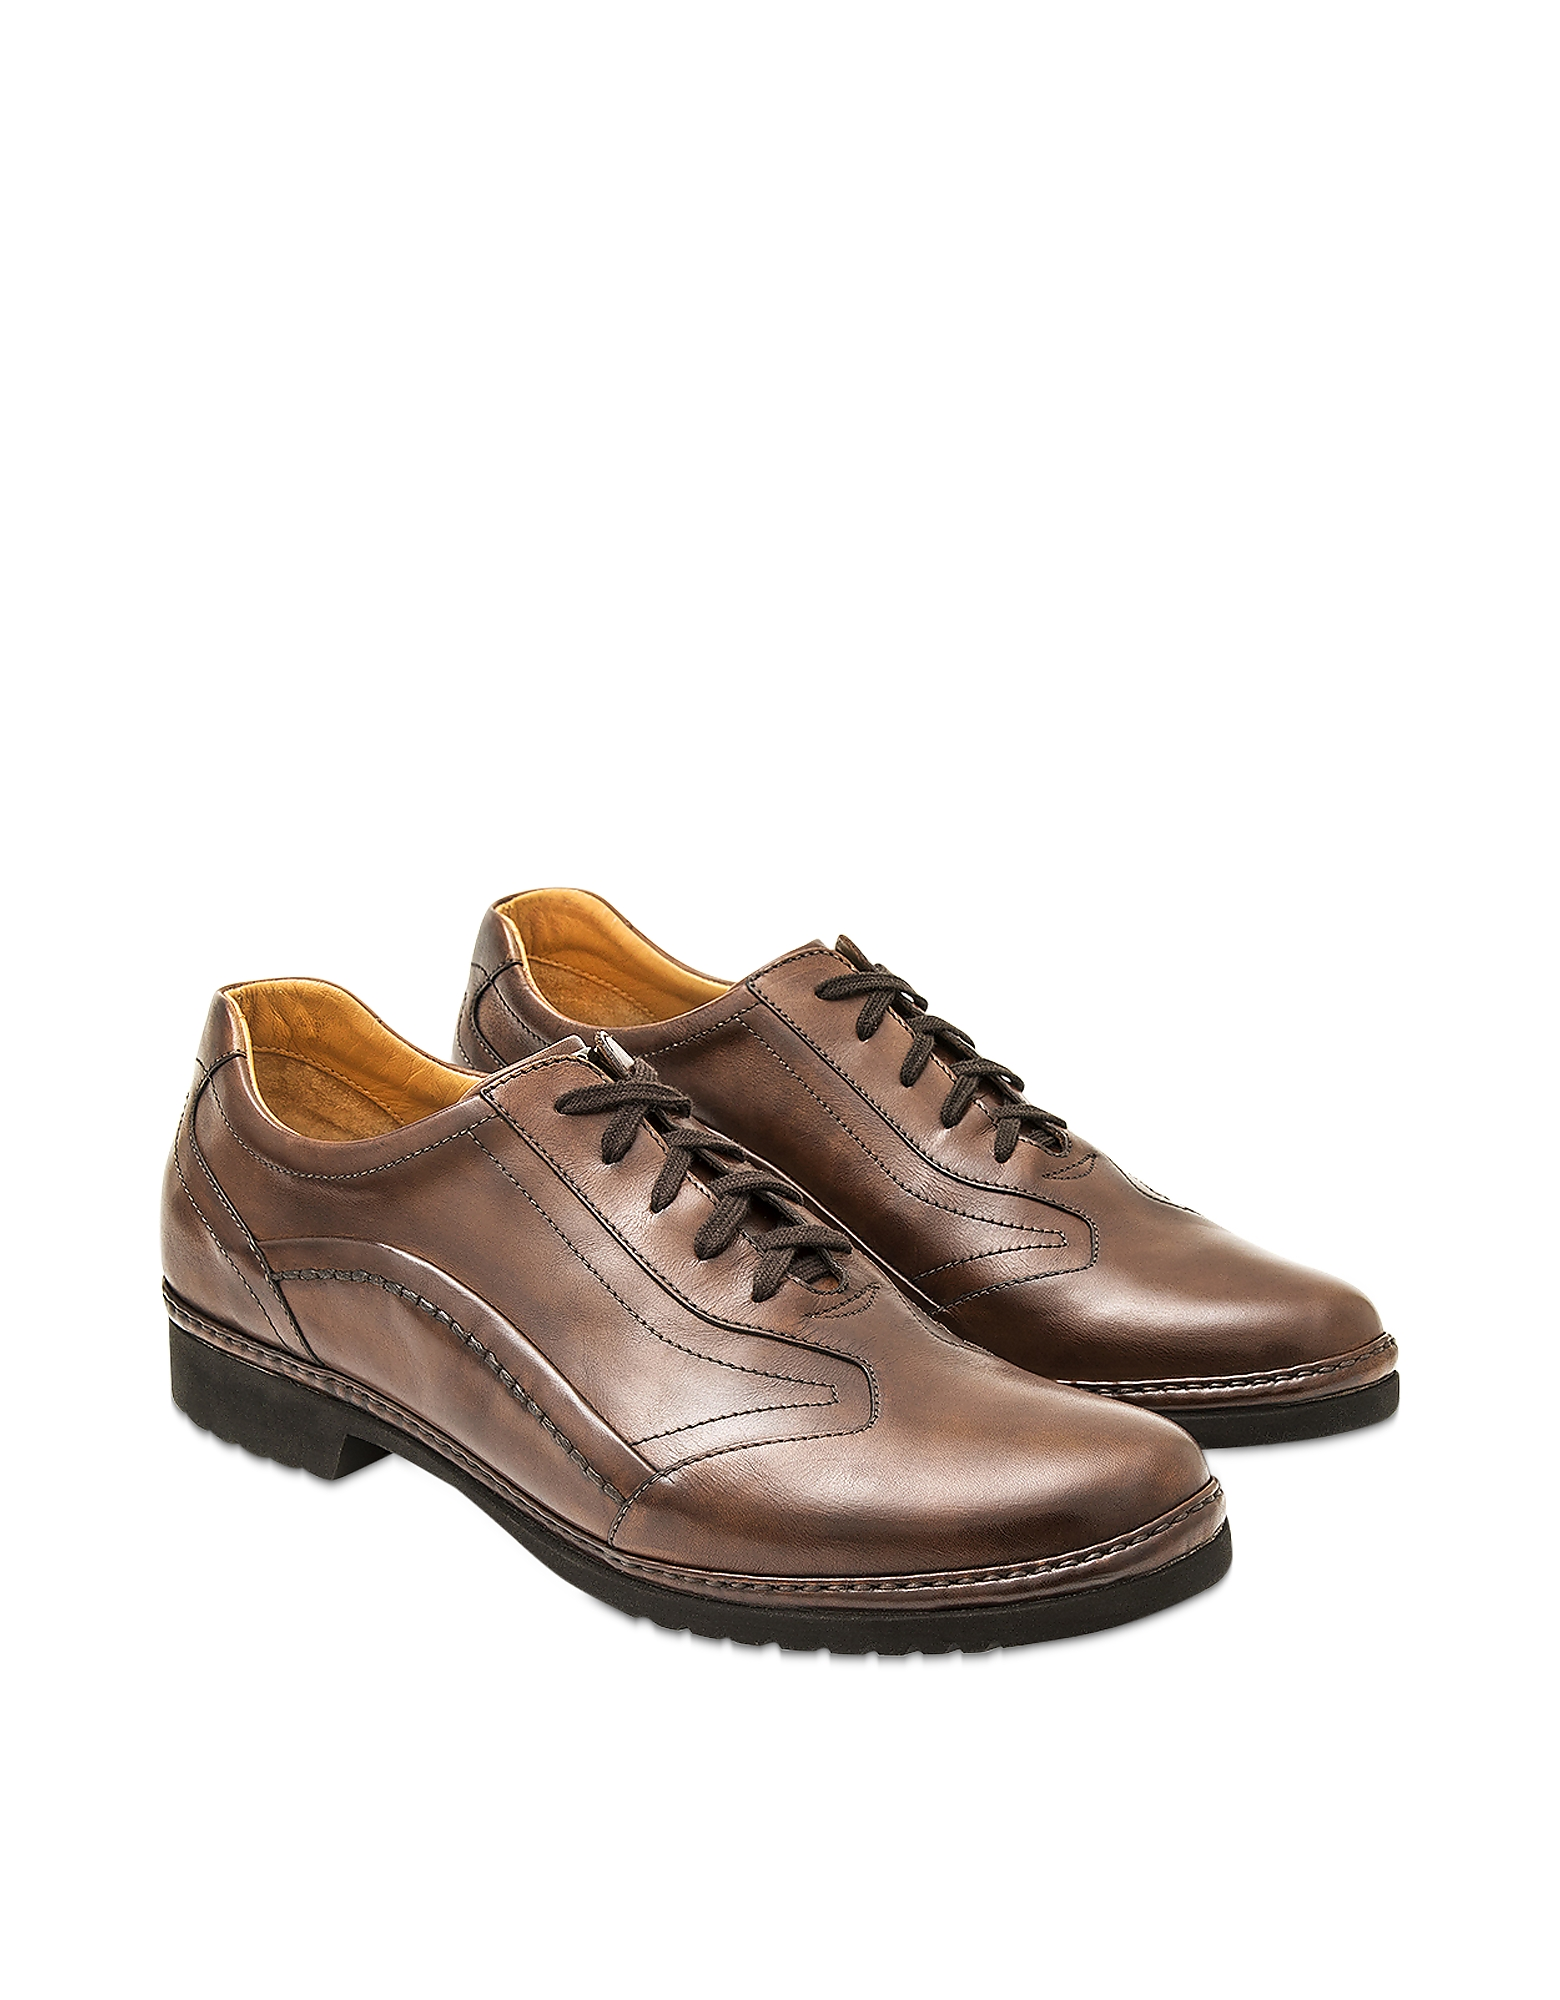 Pakerson Designer Shoes, Cocoa Italian Handmade Leather Lace-up Shoes